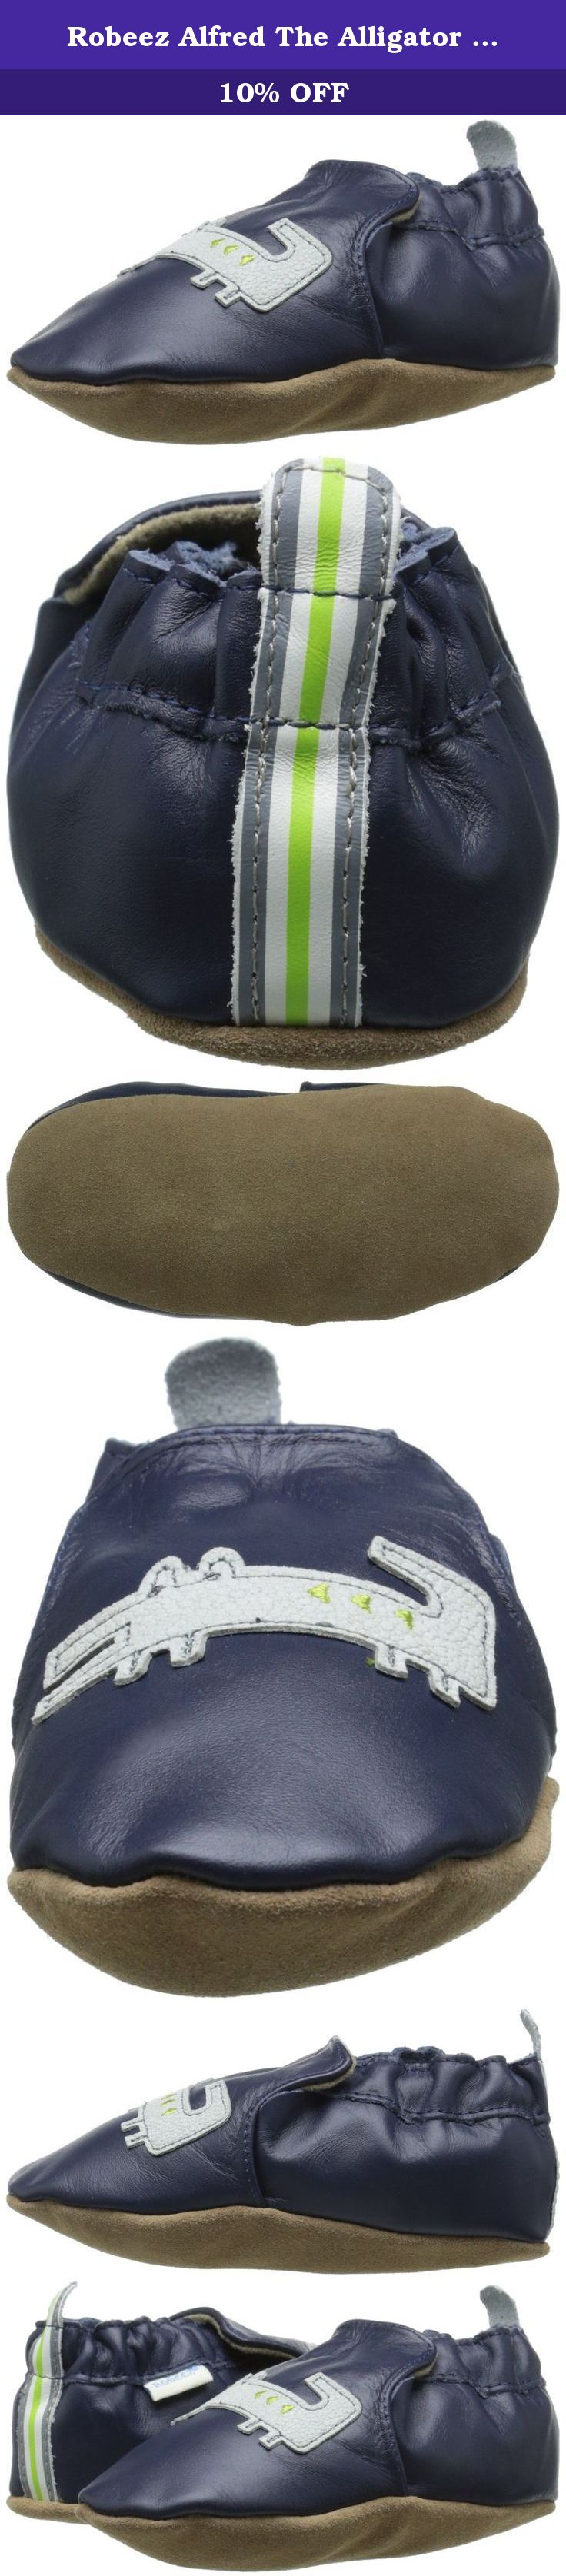 Robeez Alfred The Alligator Crib Shoe (Infant), Navy, 0-6 Months M US Infant. Robeez Alfred The Alligator (Inf/Tod) - Navy The best shoes mimic bare feet, by supporting - not constricting - tiny, growing feet. Robeez Soft Soles flex and bend with every step. They promote good balance and unrestricted growth, while protecting little feet from our big world. Features: Perfect shoes for Infants, Babies, Pre-Walkers and Toddlers - See more at:...